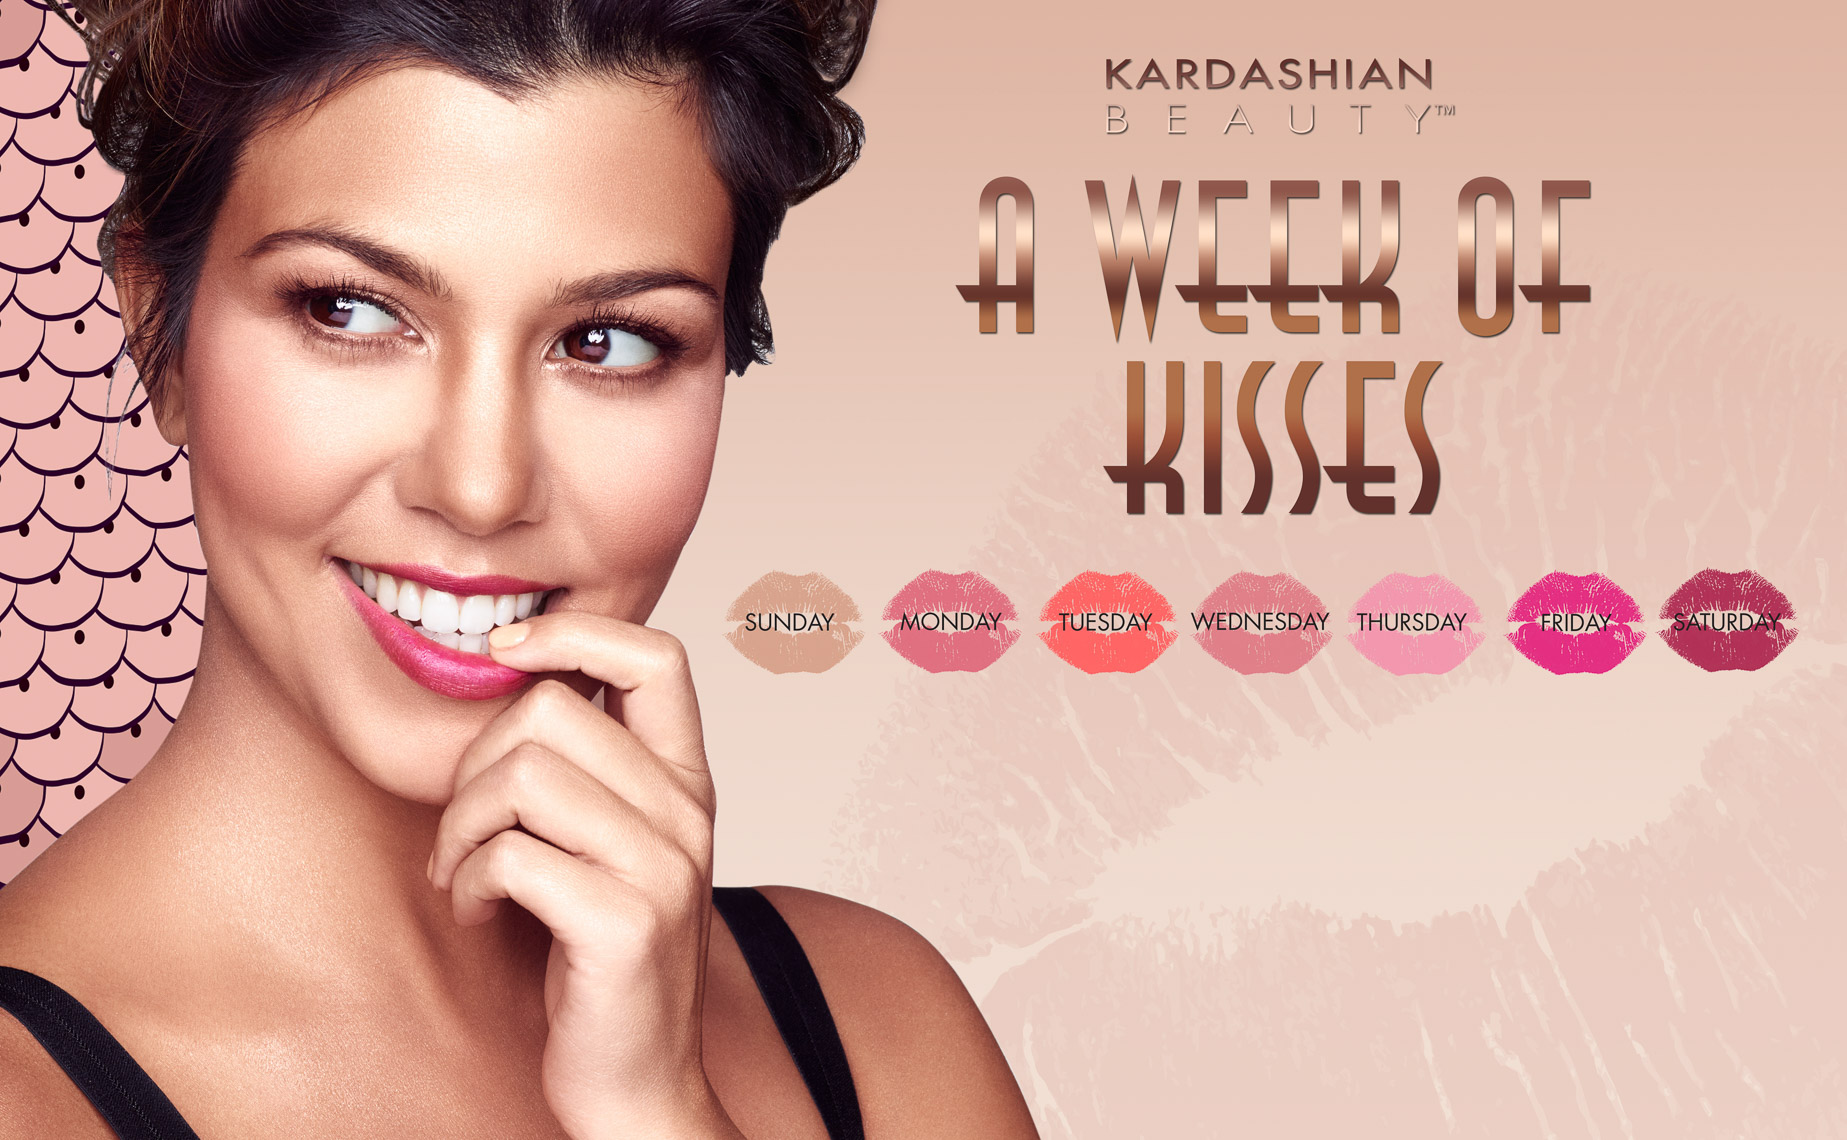 Kardashian_-week_of_kisses_pdq